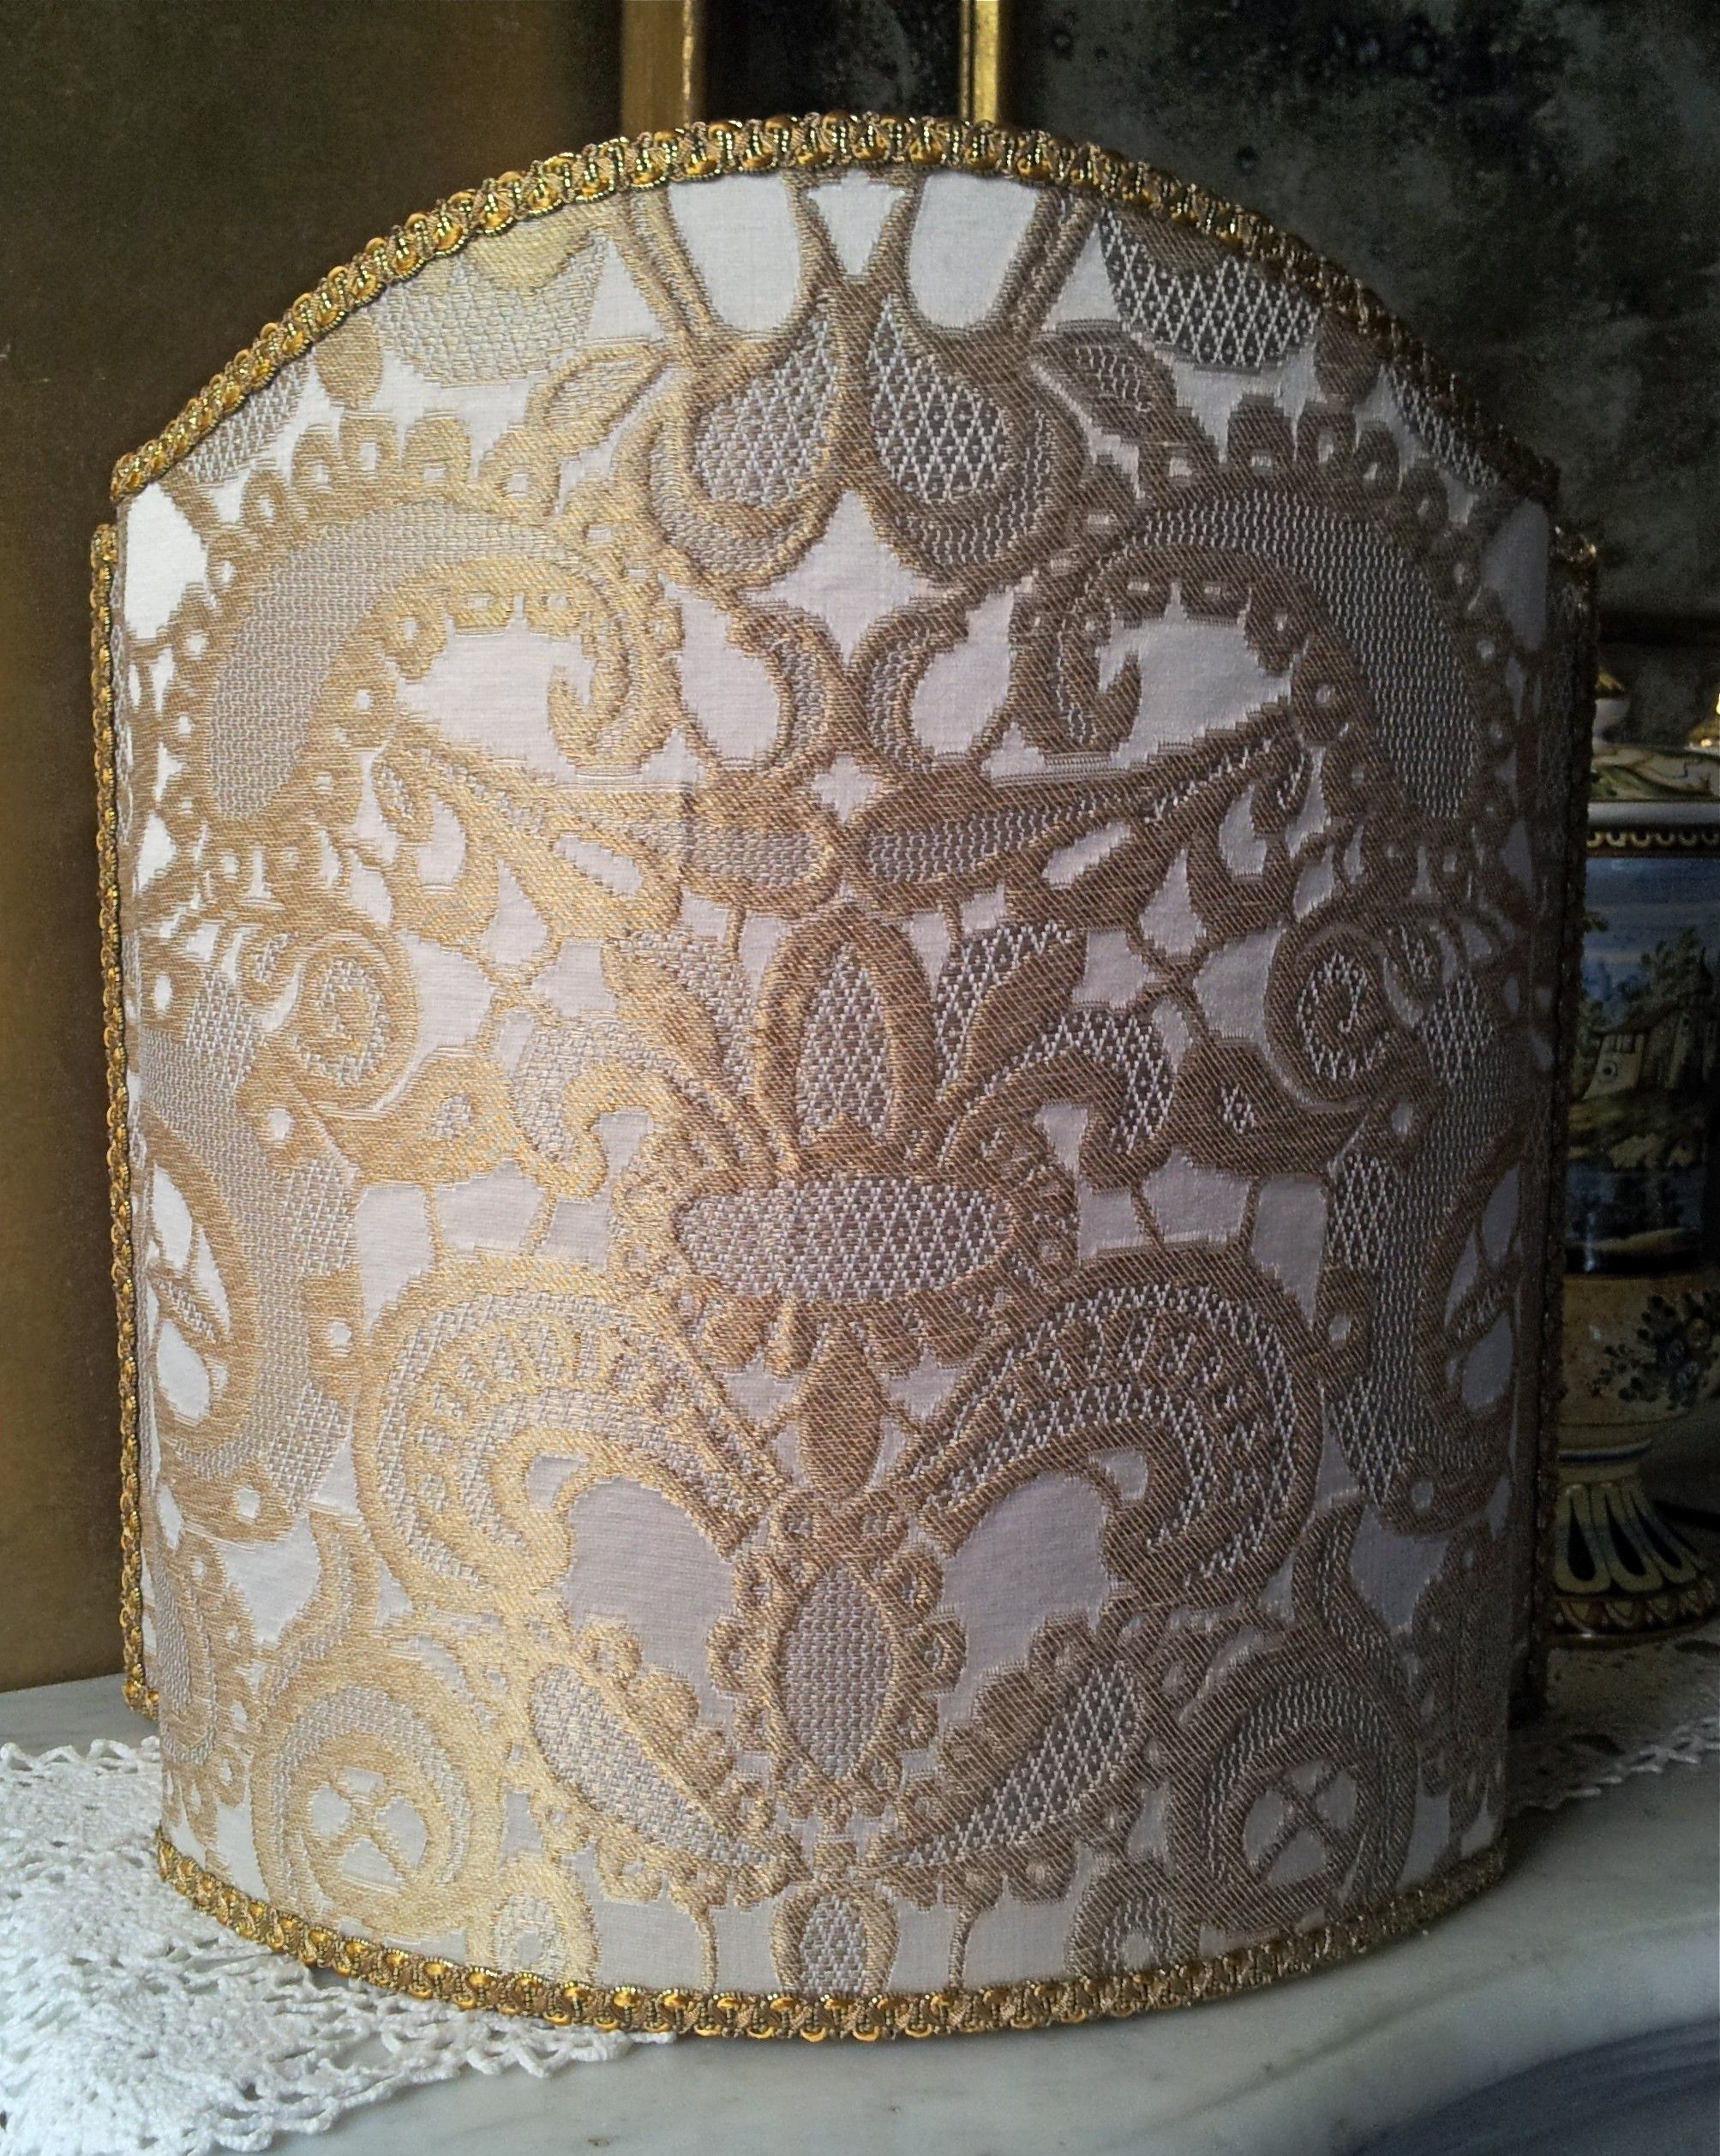 Venetian lampshade in rubelli silk lampas fabric ivory and gold venetian lampshade in rubelli silk lampas fabric ivory and gold gianduja pattern half lamp shade mozeypictures Image collections